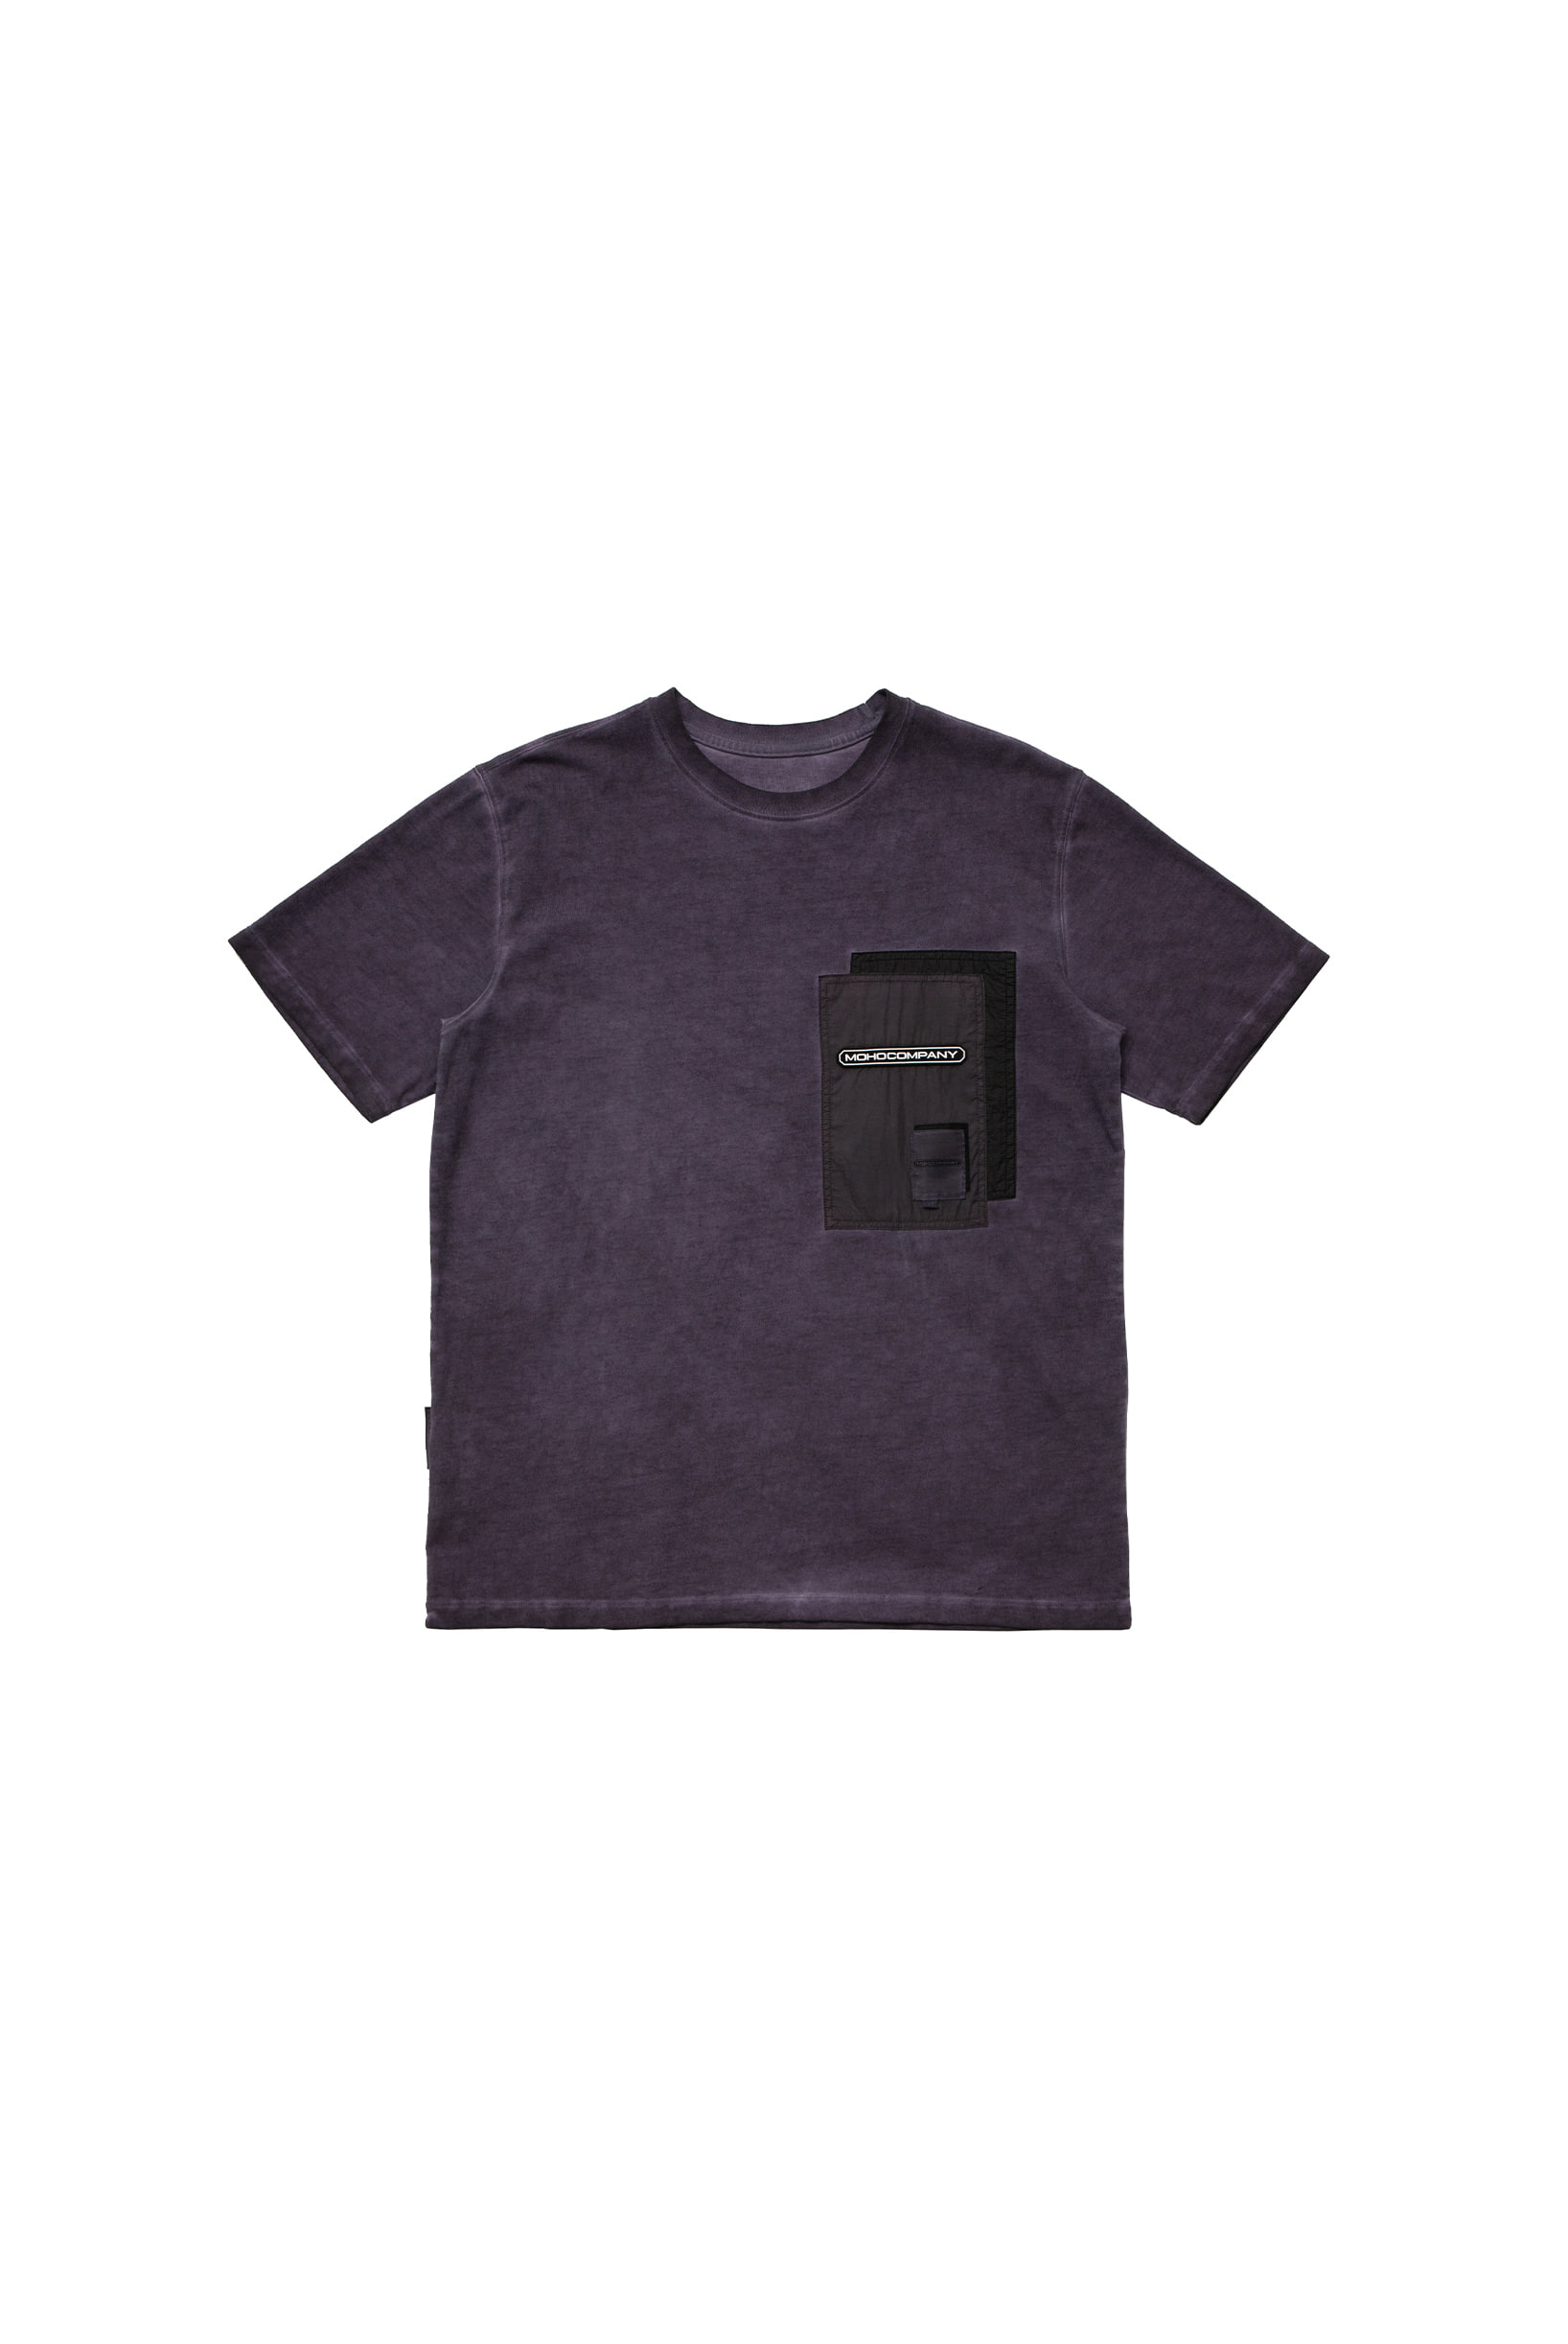 WASHED EFFECT T-SHIRT(PURPLE)